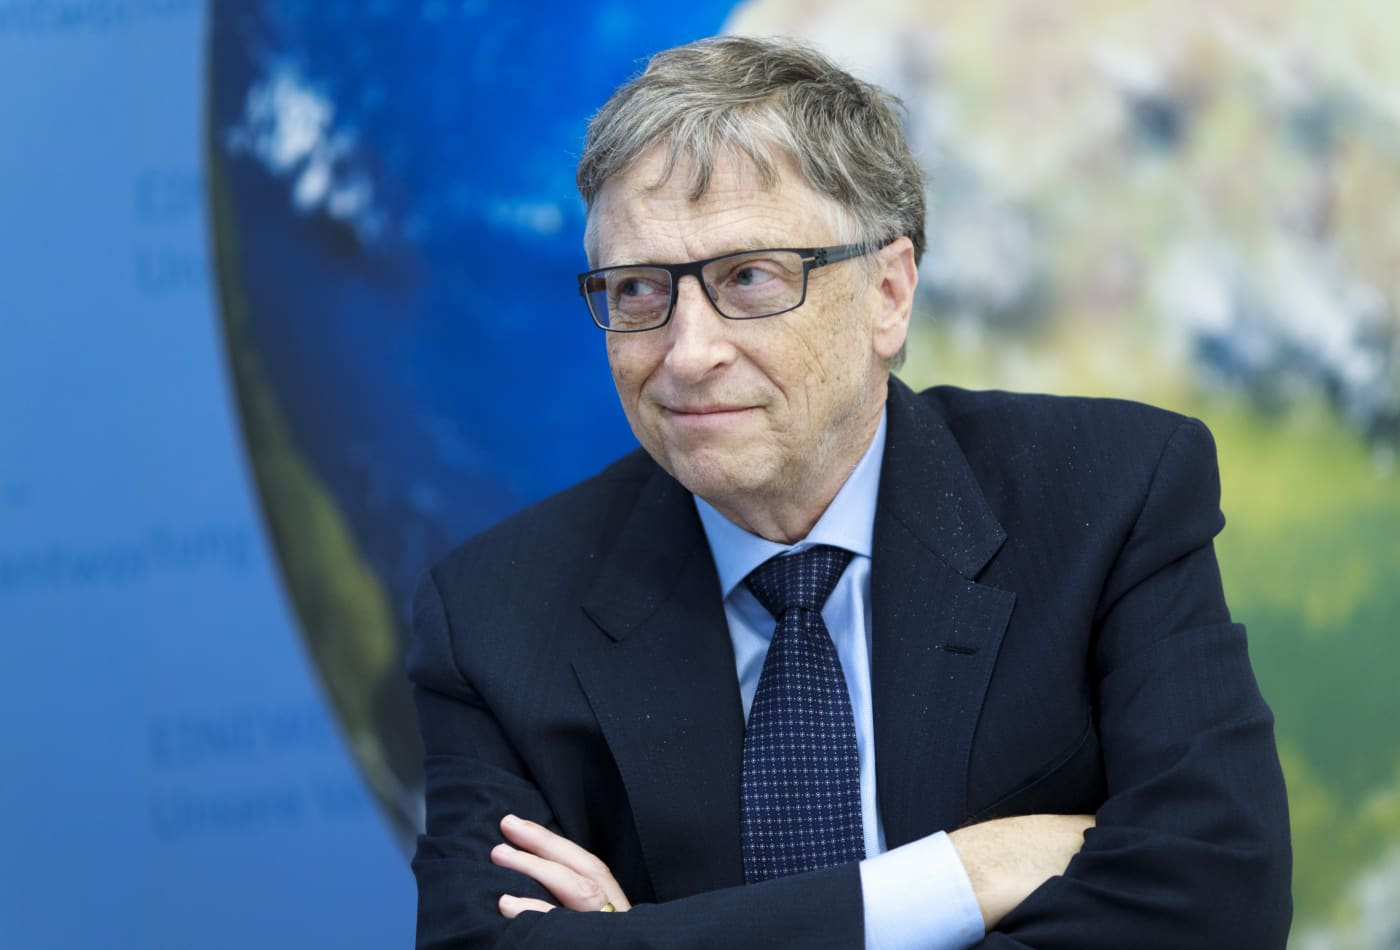 Bill Gates secures hundreds of millions from U.S. firms for climate fight